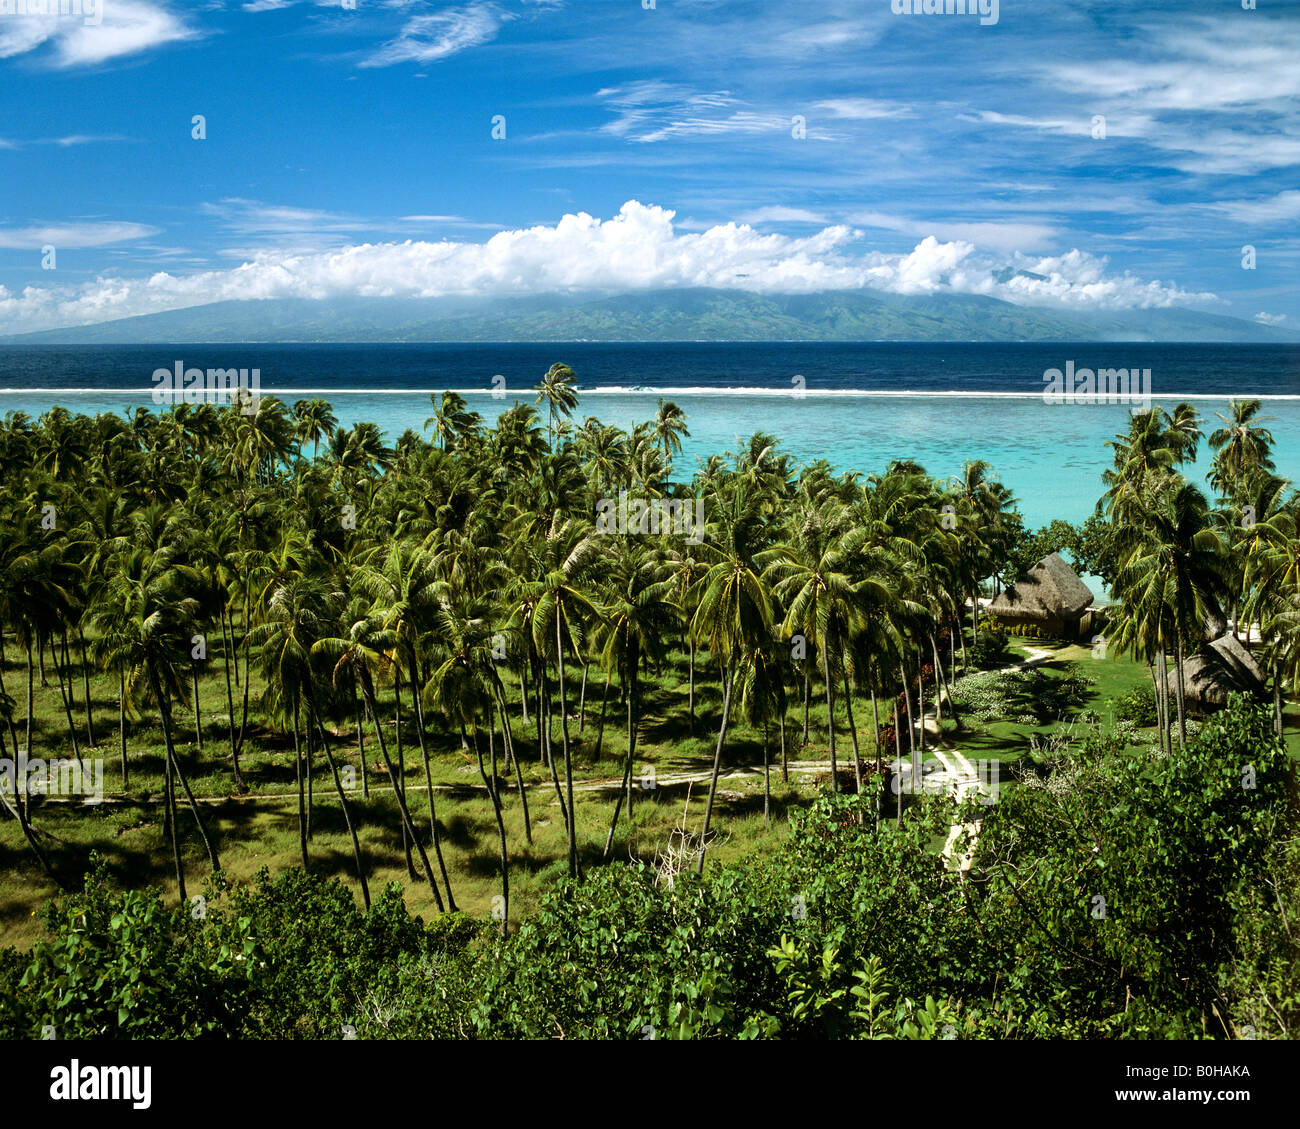 Palm trees and clear blue waters, Moorea, Society Islands, French Polynesia, South Pacific, Oceania - Stock Image